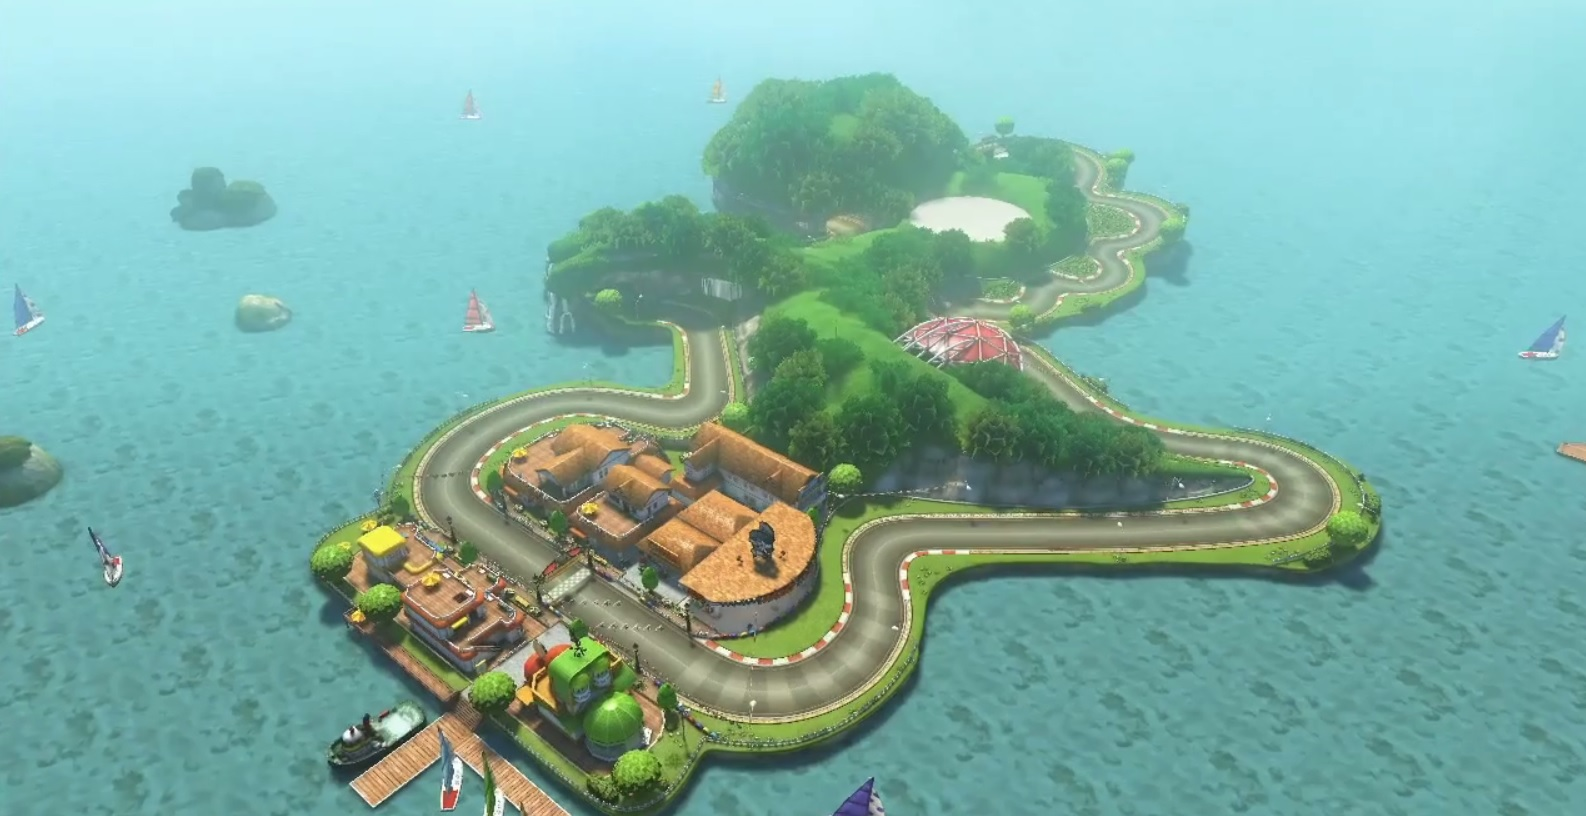 yoshi circuit mario kart racing wiki fandom powered by wikia. Black Bedroom Furniture Sets. Home Design Ideas